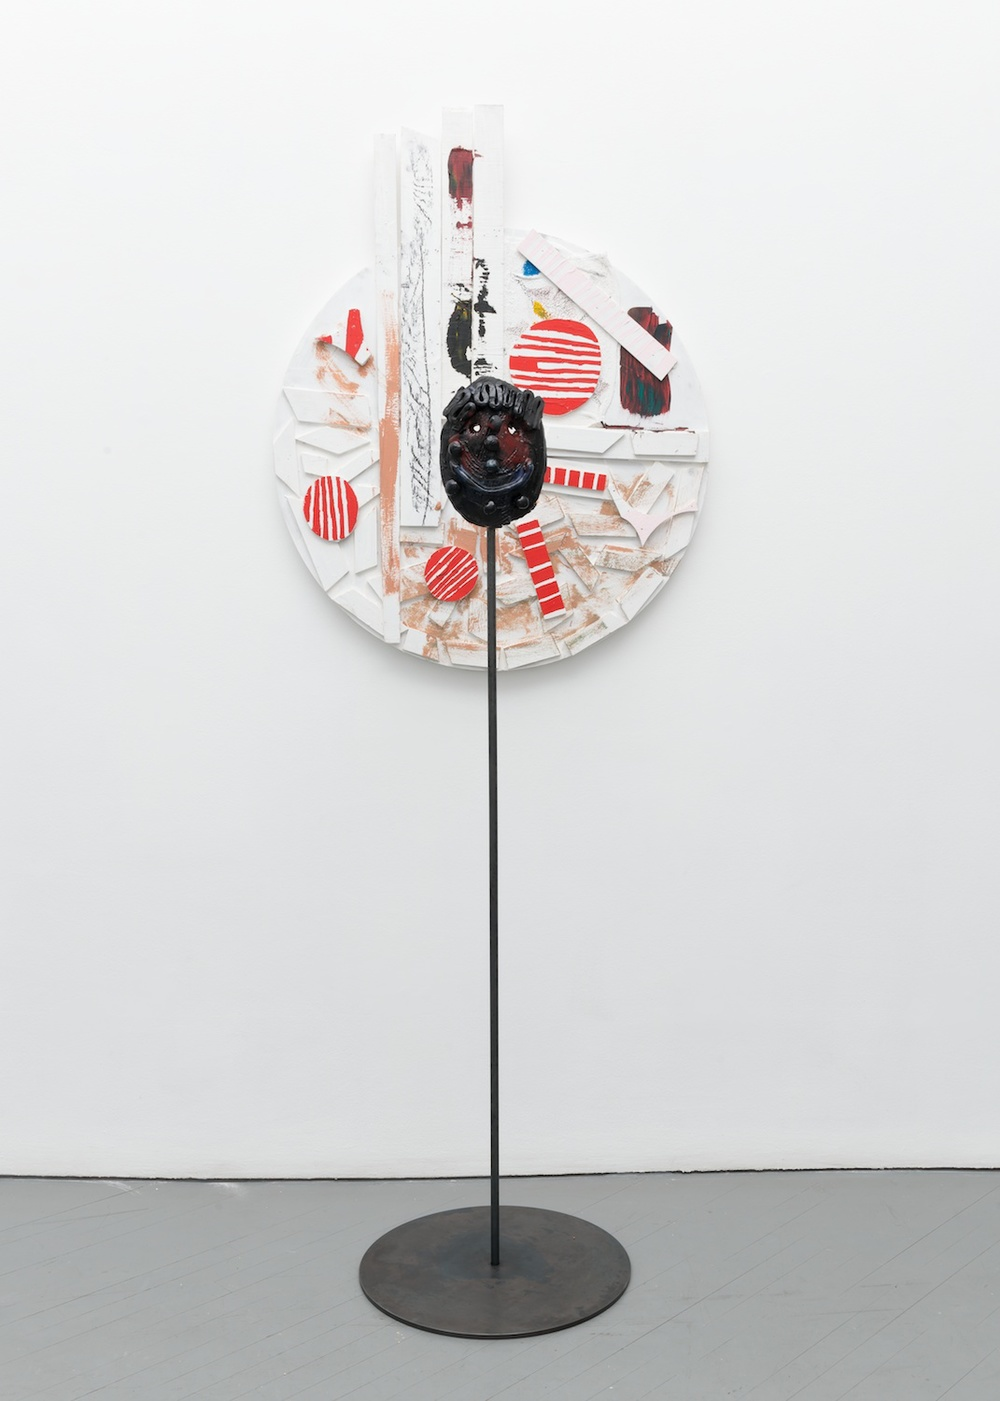 William J. O'Brien  Untitled  2013/2014 Mixed media on wood; Glazed ceramic on steel armature 35h x 44w in (painting); 64 ½h x 20w x 20d in (ceramic + stand) WOB905/WOB935